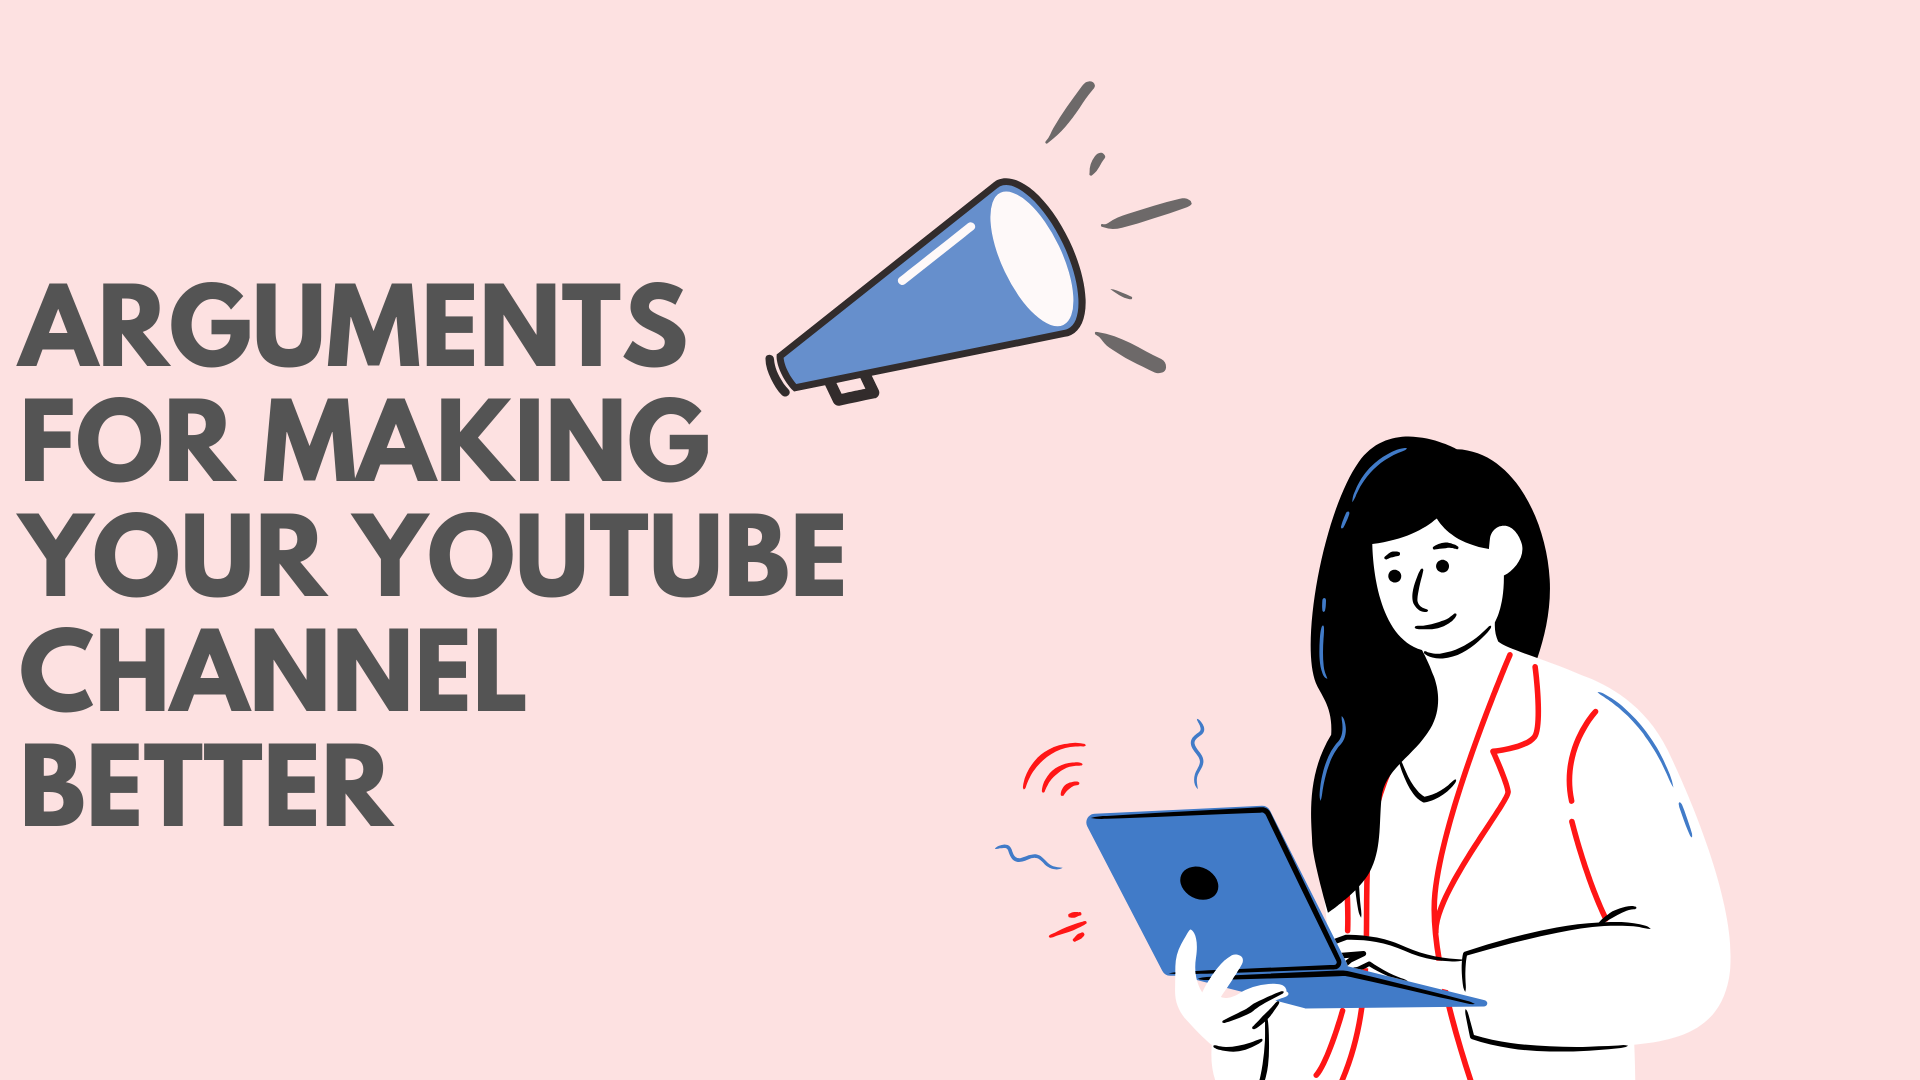 Arguments For Making Your YouTube Channel Better